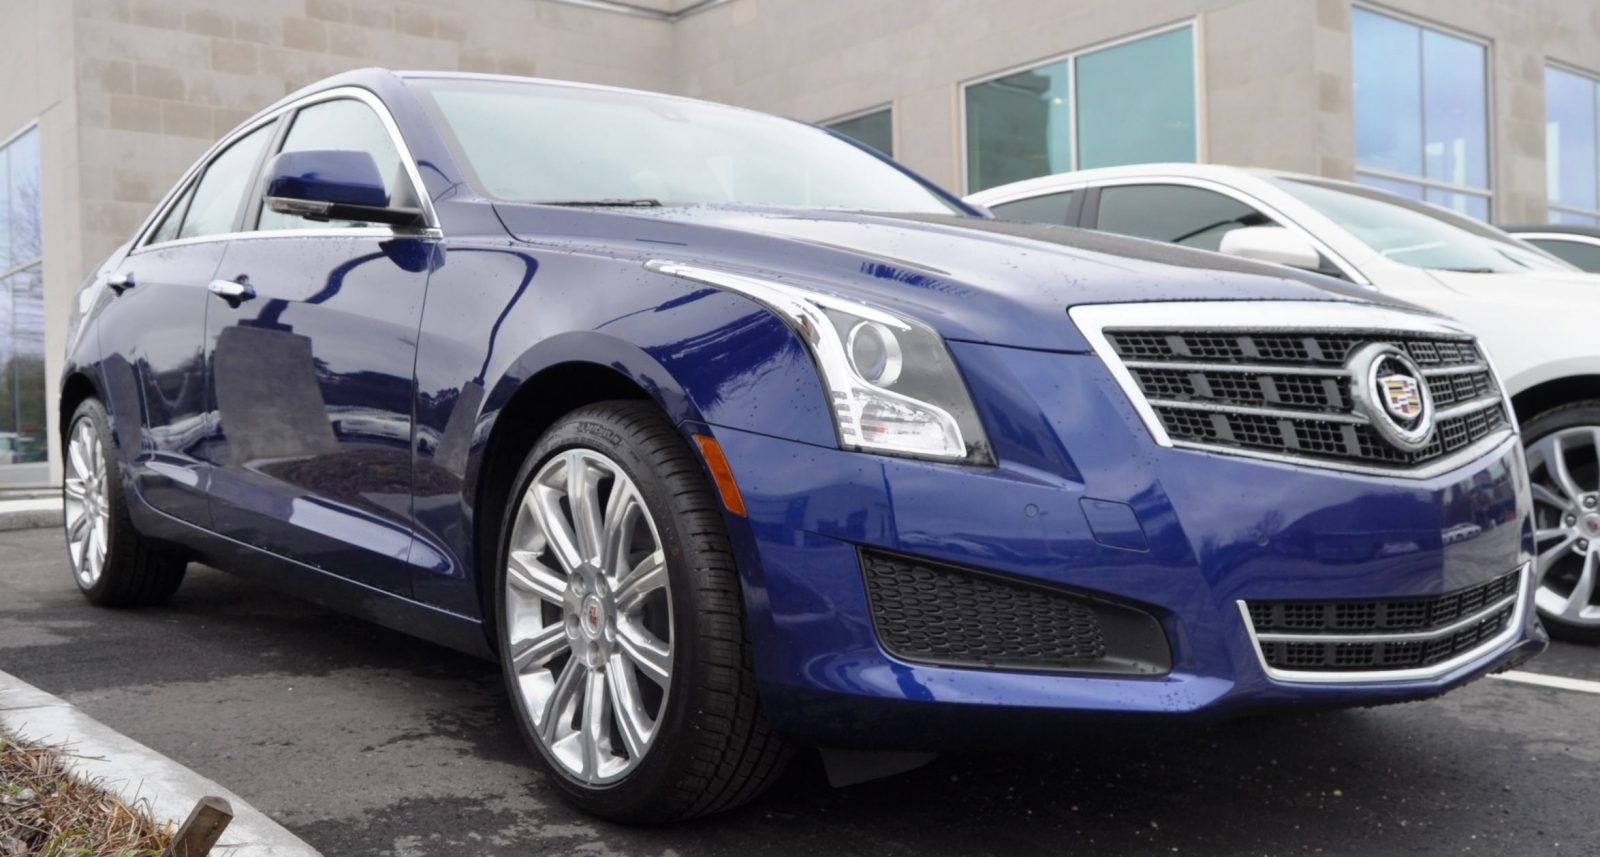 2014 Cadillac ATS4 - High-Res Photos 4